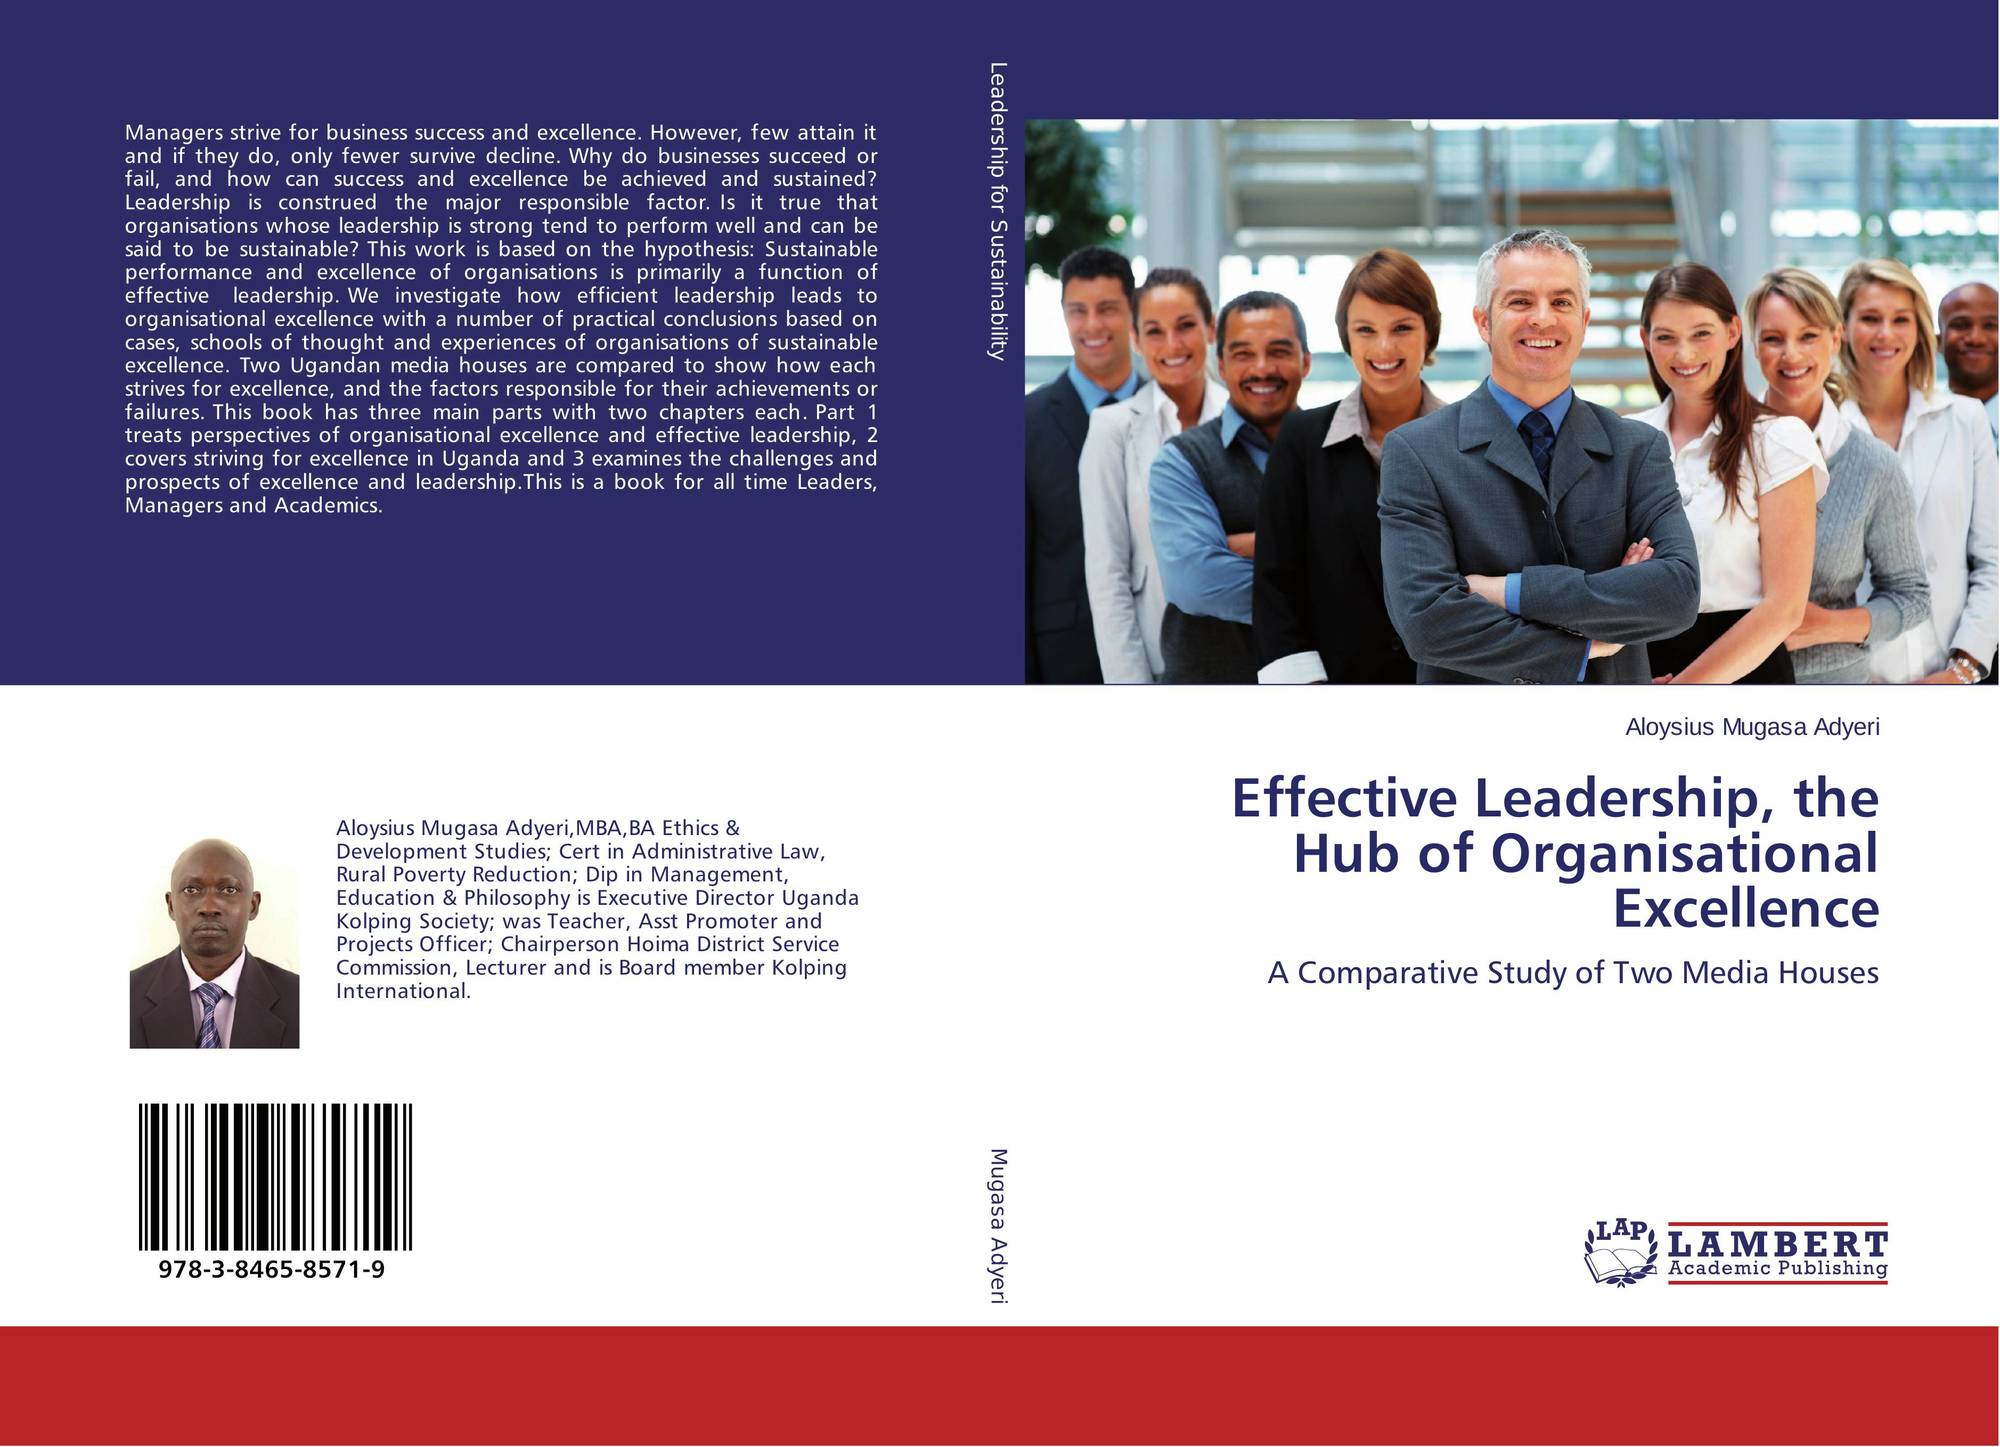 excellence and efficiency of an organization Of excellence such as learning and development and compensation this center of excellence almost always is separate from hr shared services and support, which either exists as part of a tertiary model.